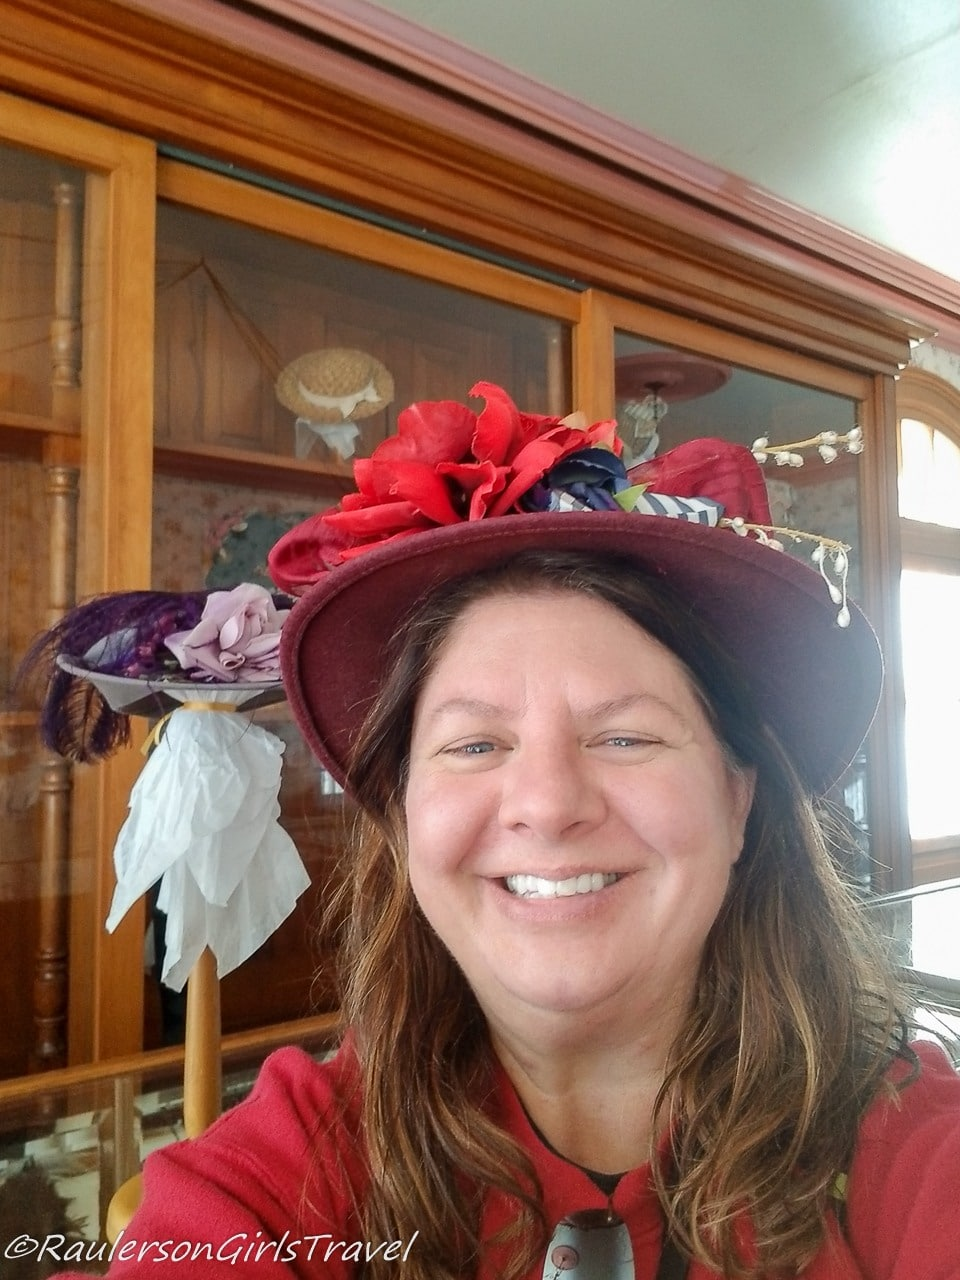 Heather trying on hats at Greenfield Village